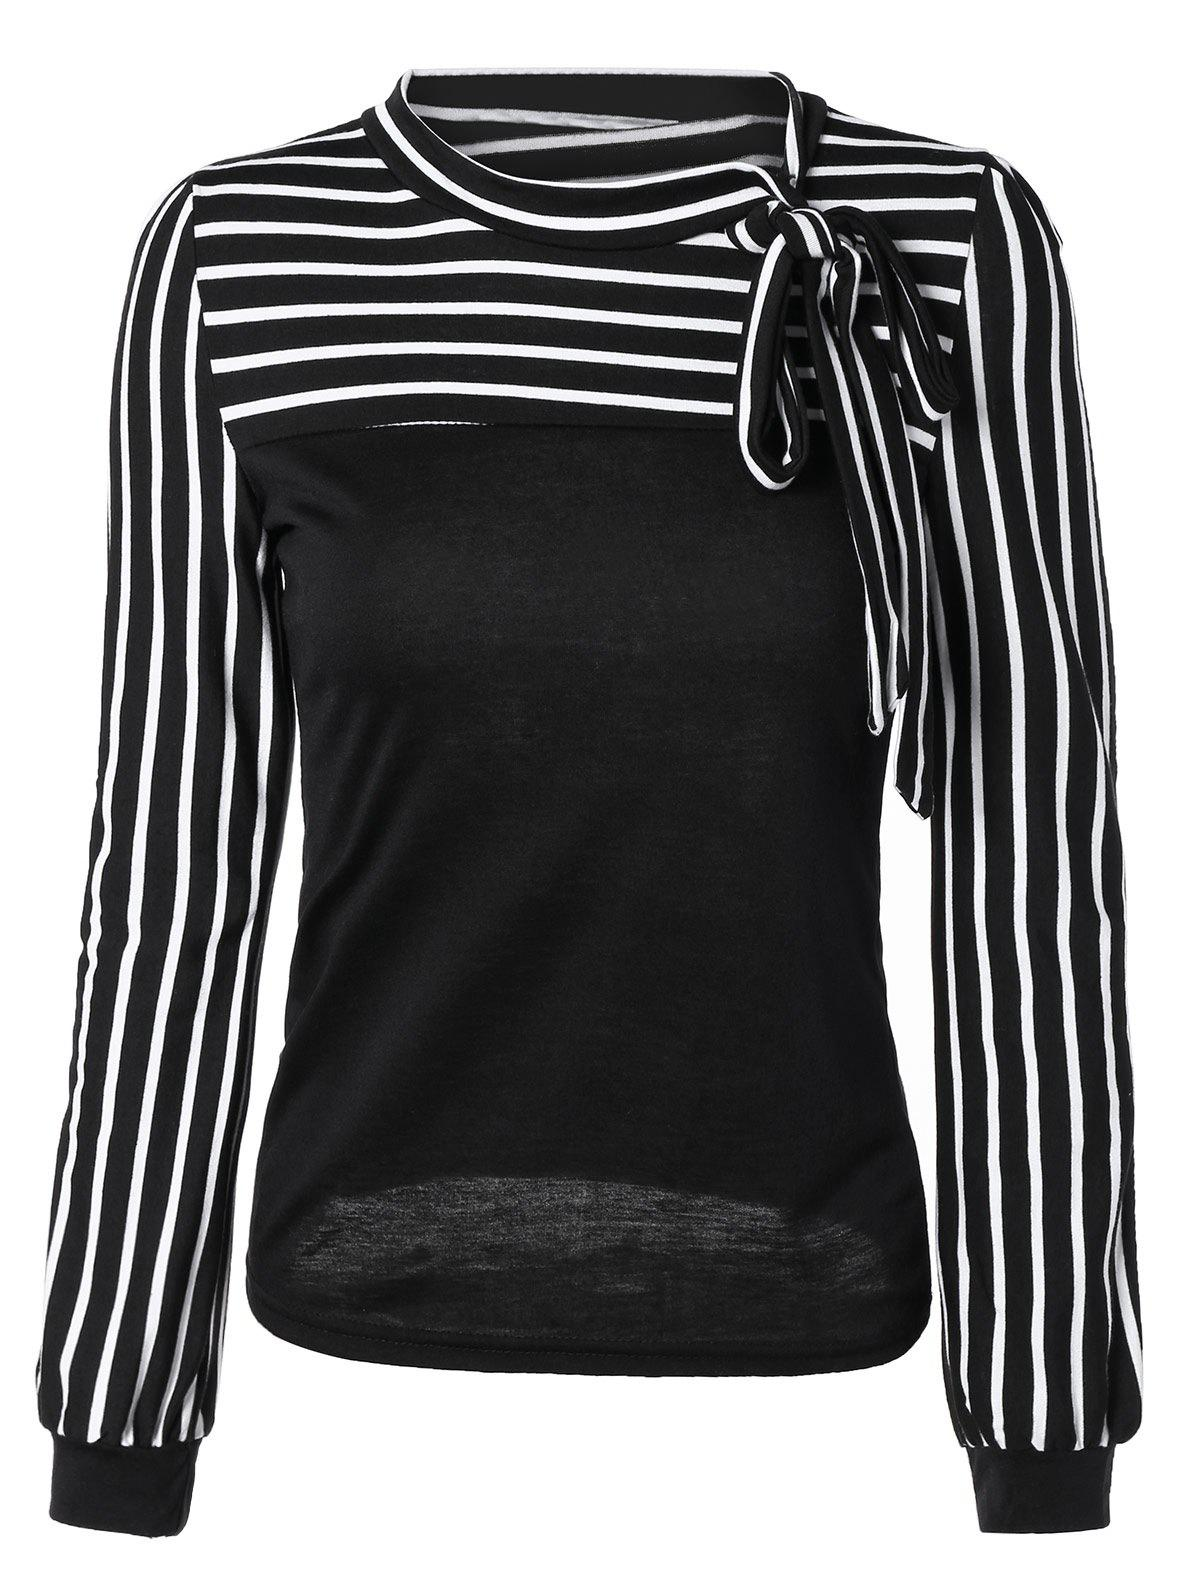 Simple Long Sleeve Bowknot Top For Women - BLACK 2XL